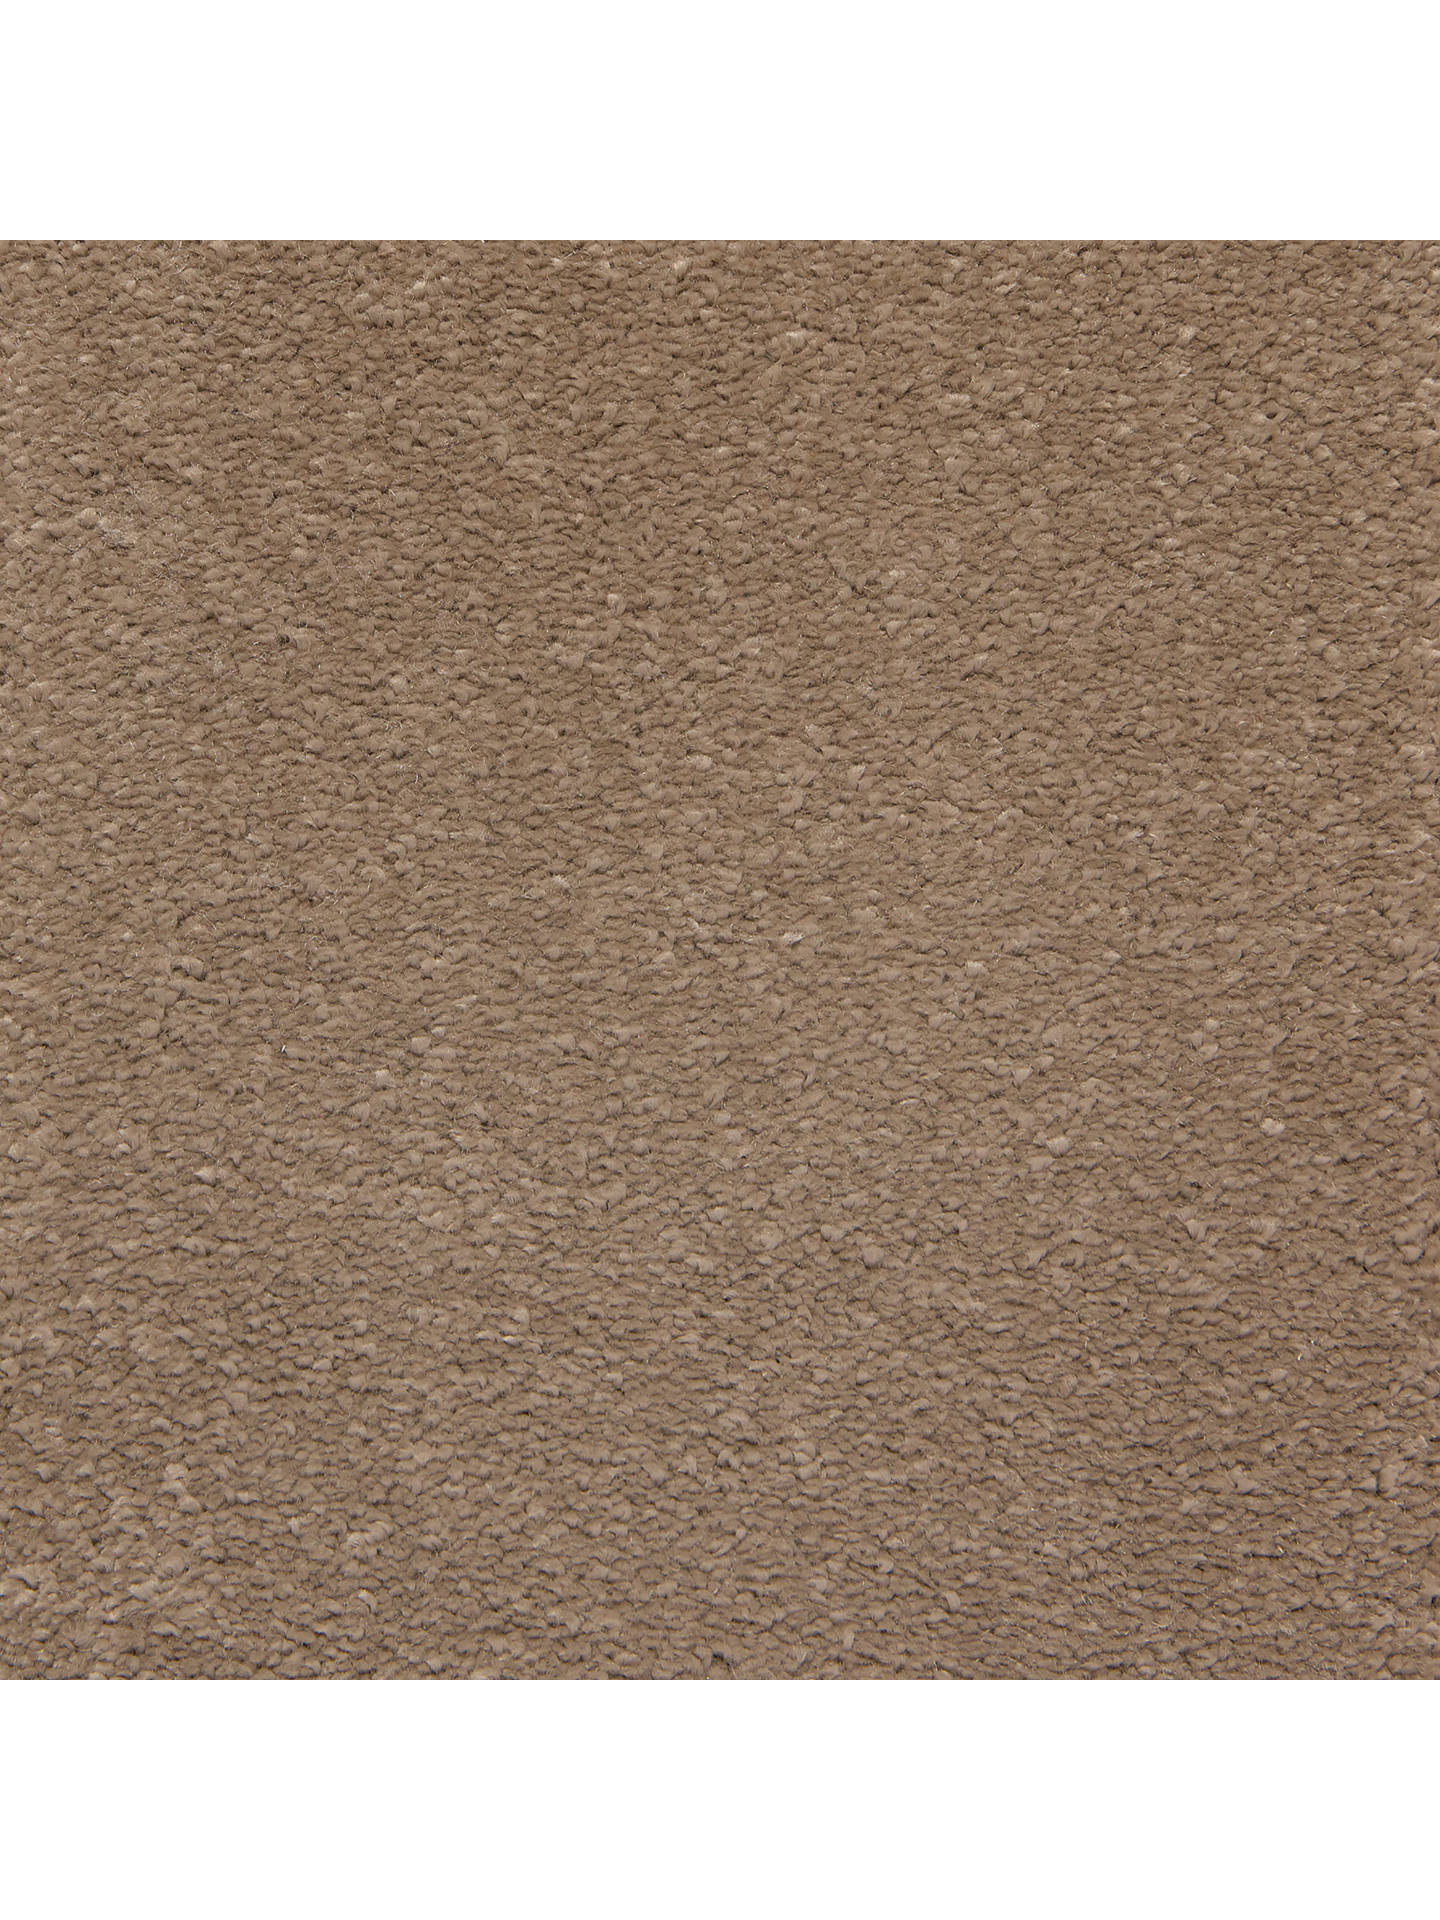 John Lewis Amp Partners Tranquility Synthetic Twist Carpet